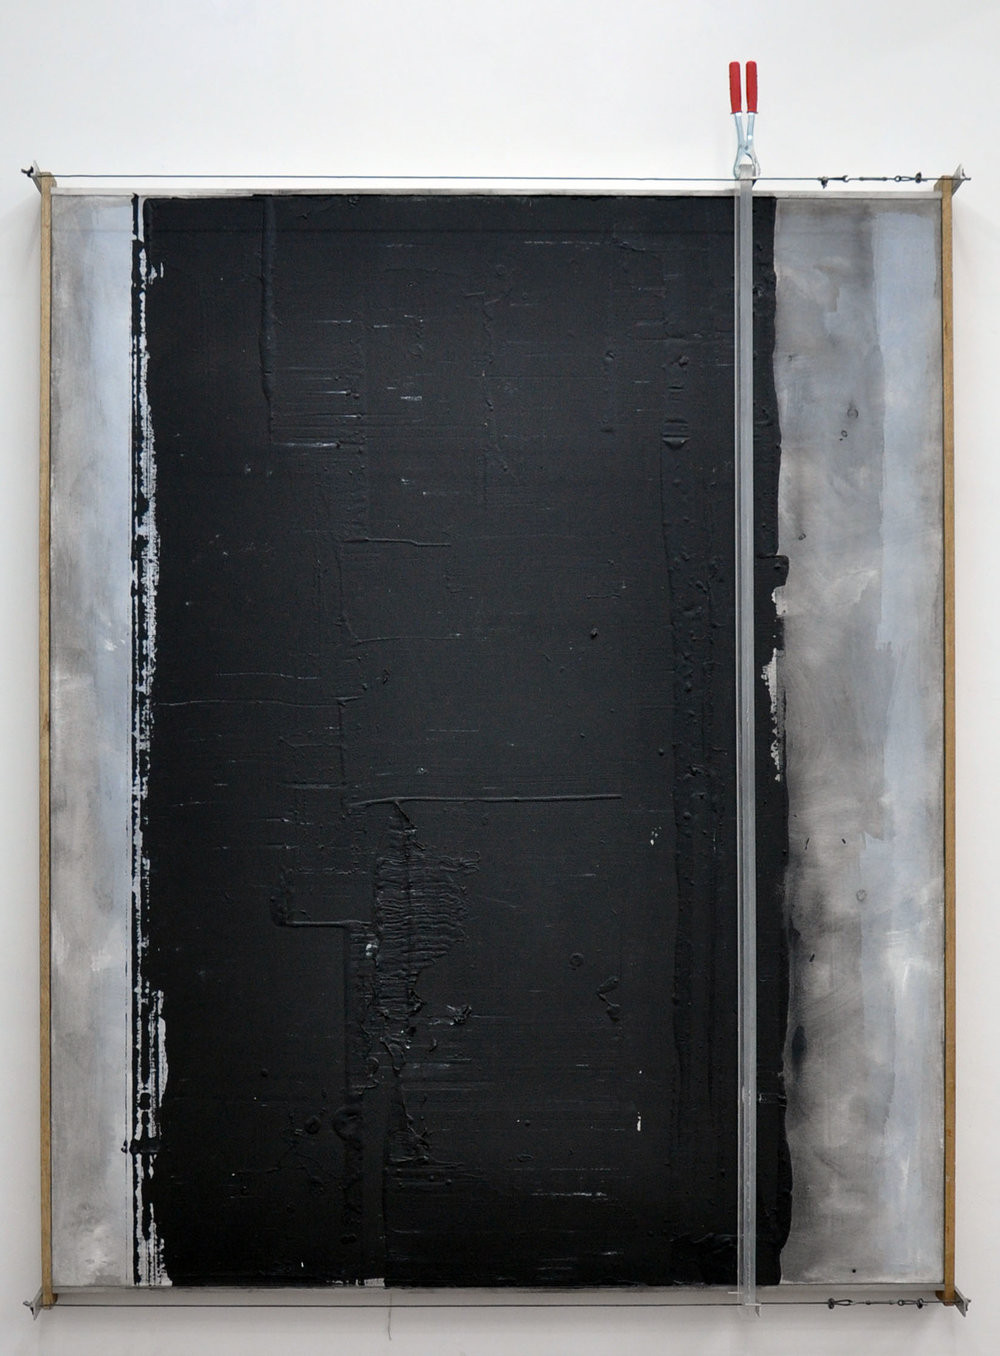 GUS ALBOR  Matters of Horizontal and Vertical Motions,  2015 Plexiglass, steel, wood, acrylic 190 x 155 cm.